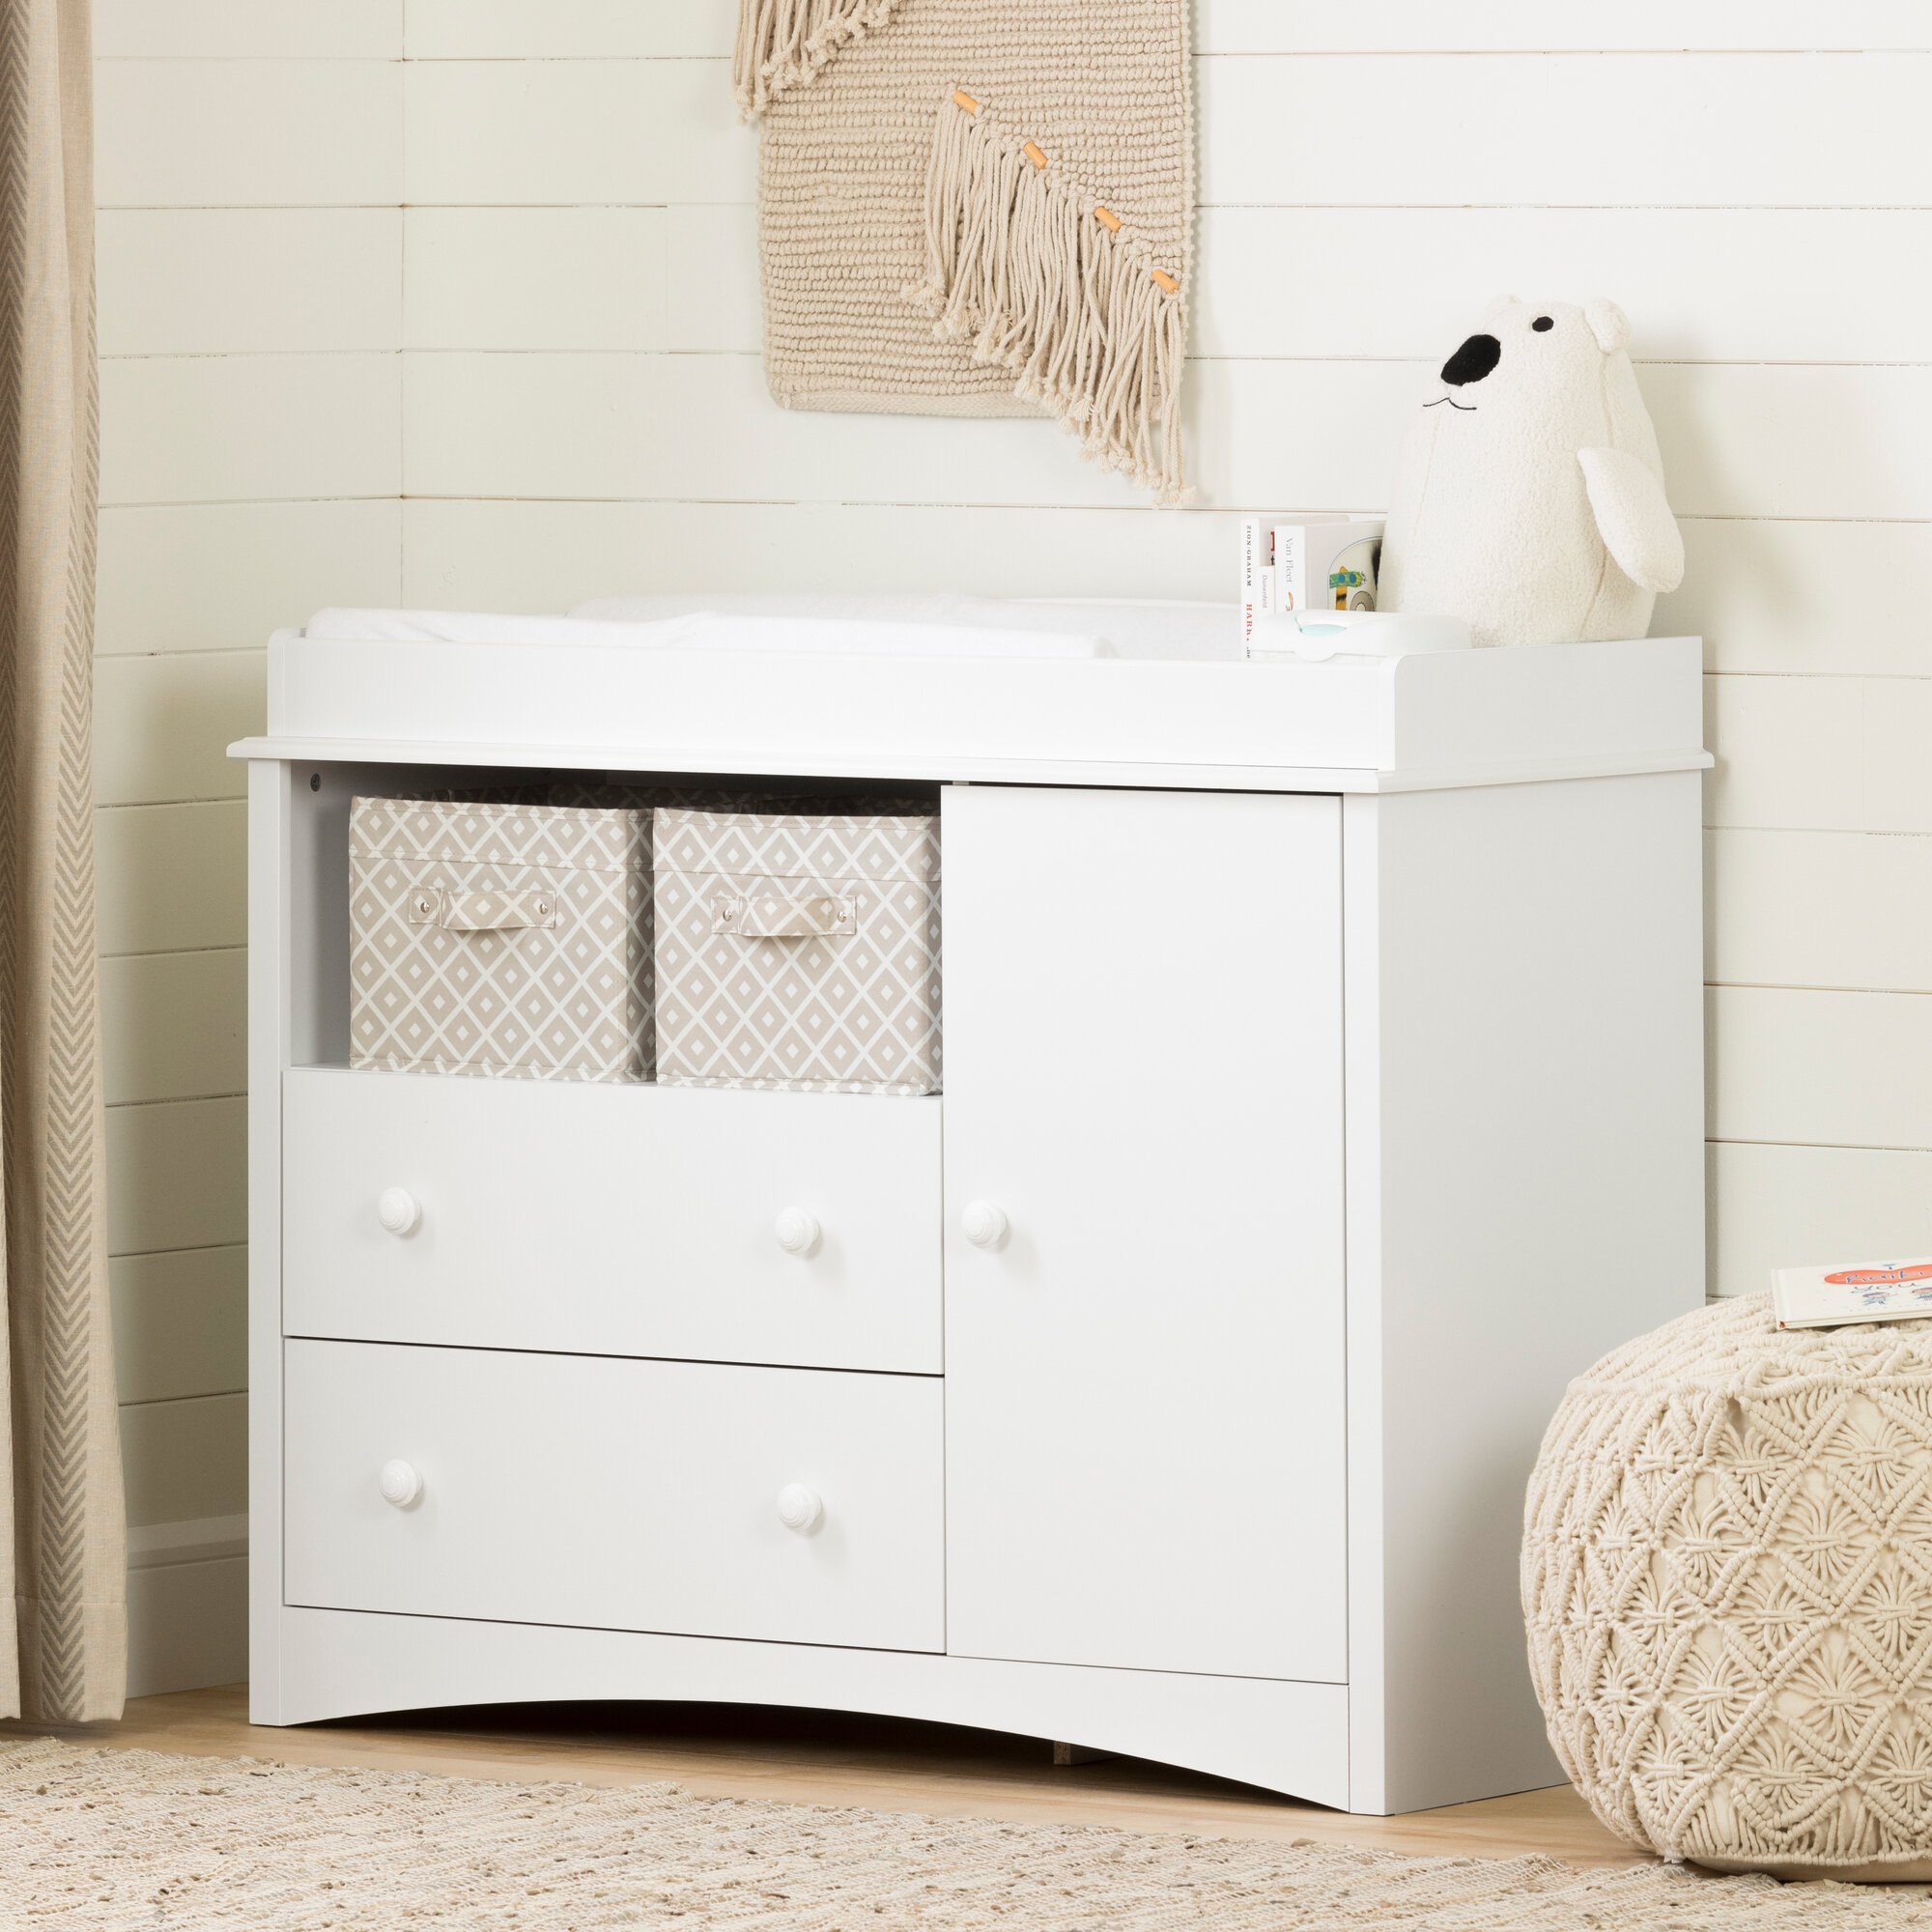 Remarkable Cabinet Changing Tables Youll Love In 2019 Wayfair Download Free Architecture Designs Intelgarnamadebymaigaardcom